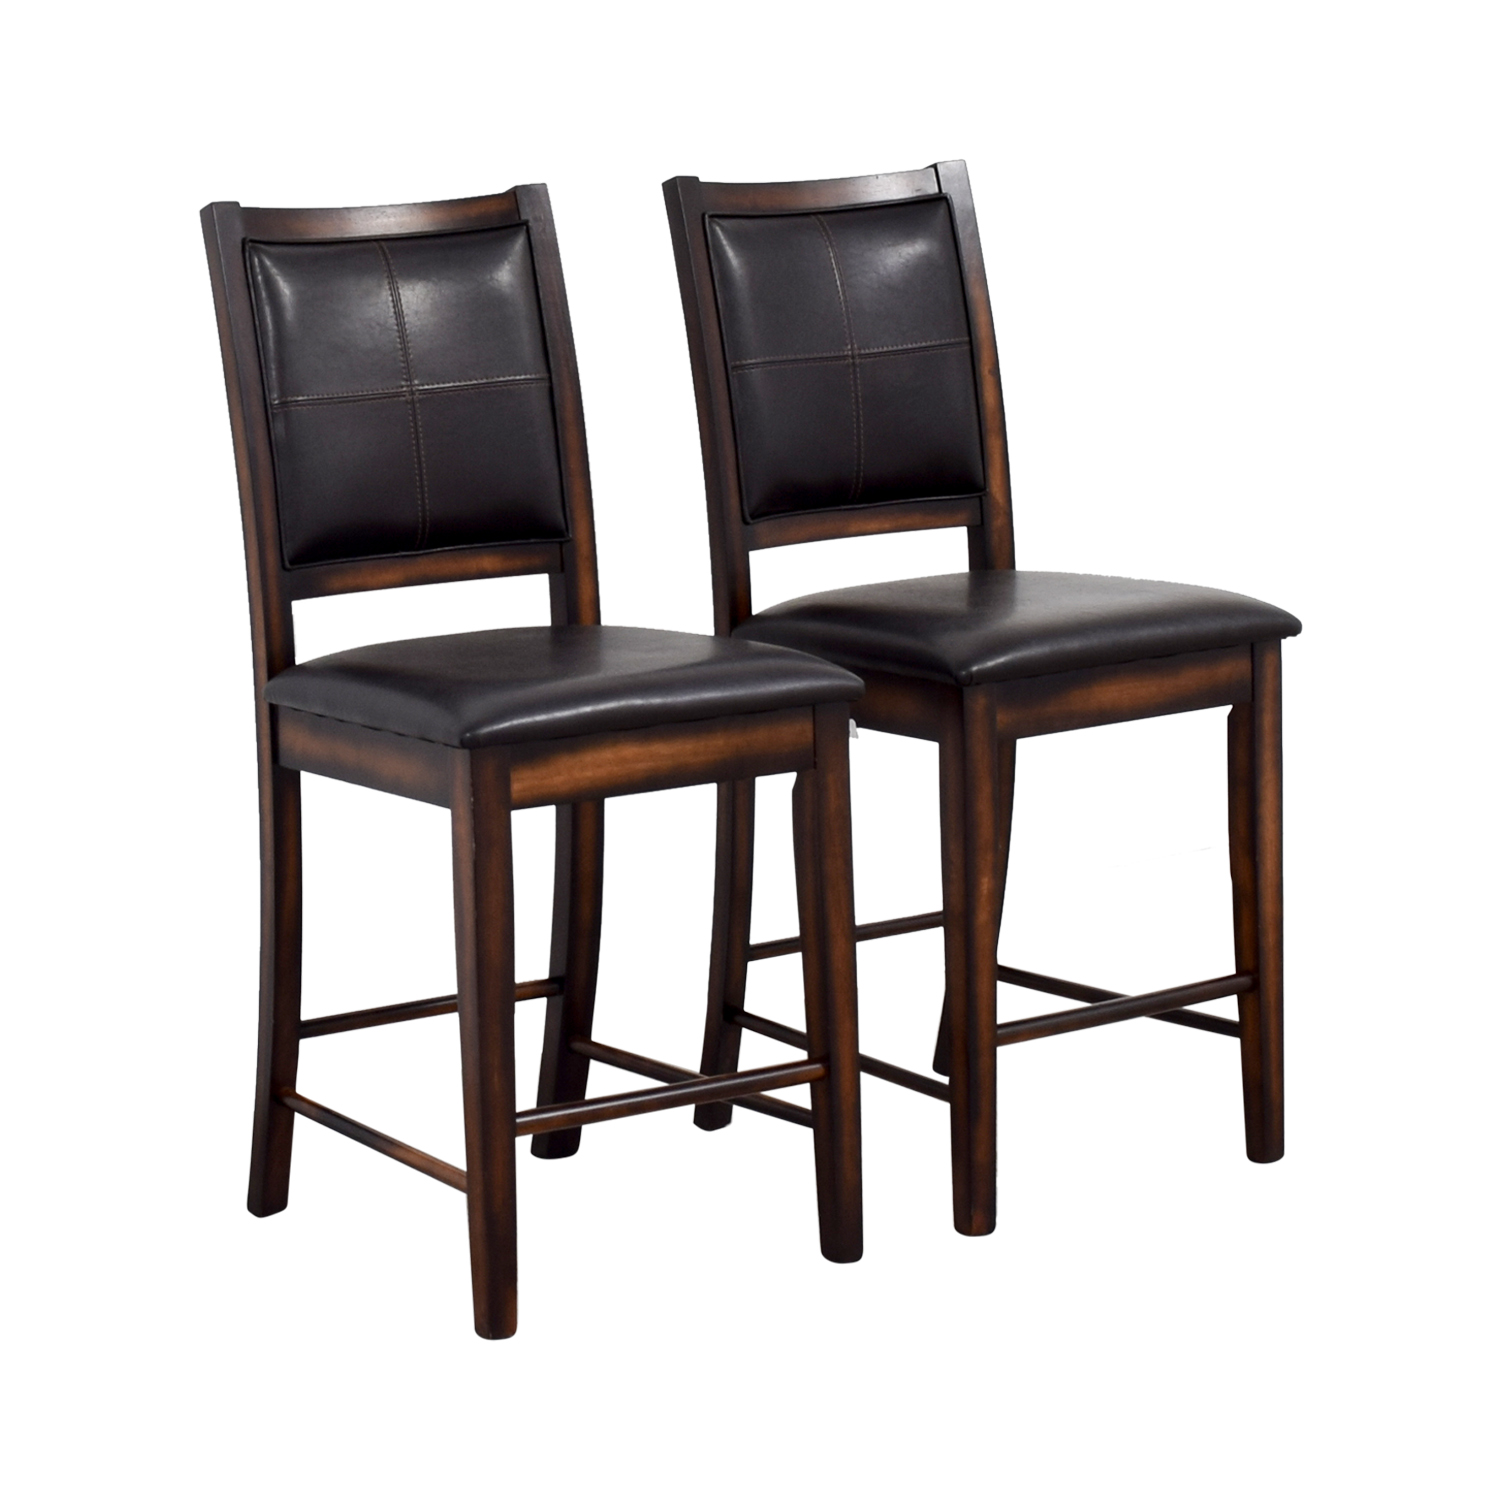 Brown Leather Counter Stools for sale